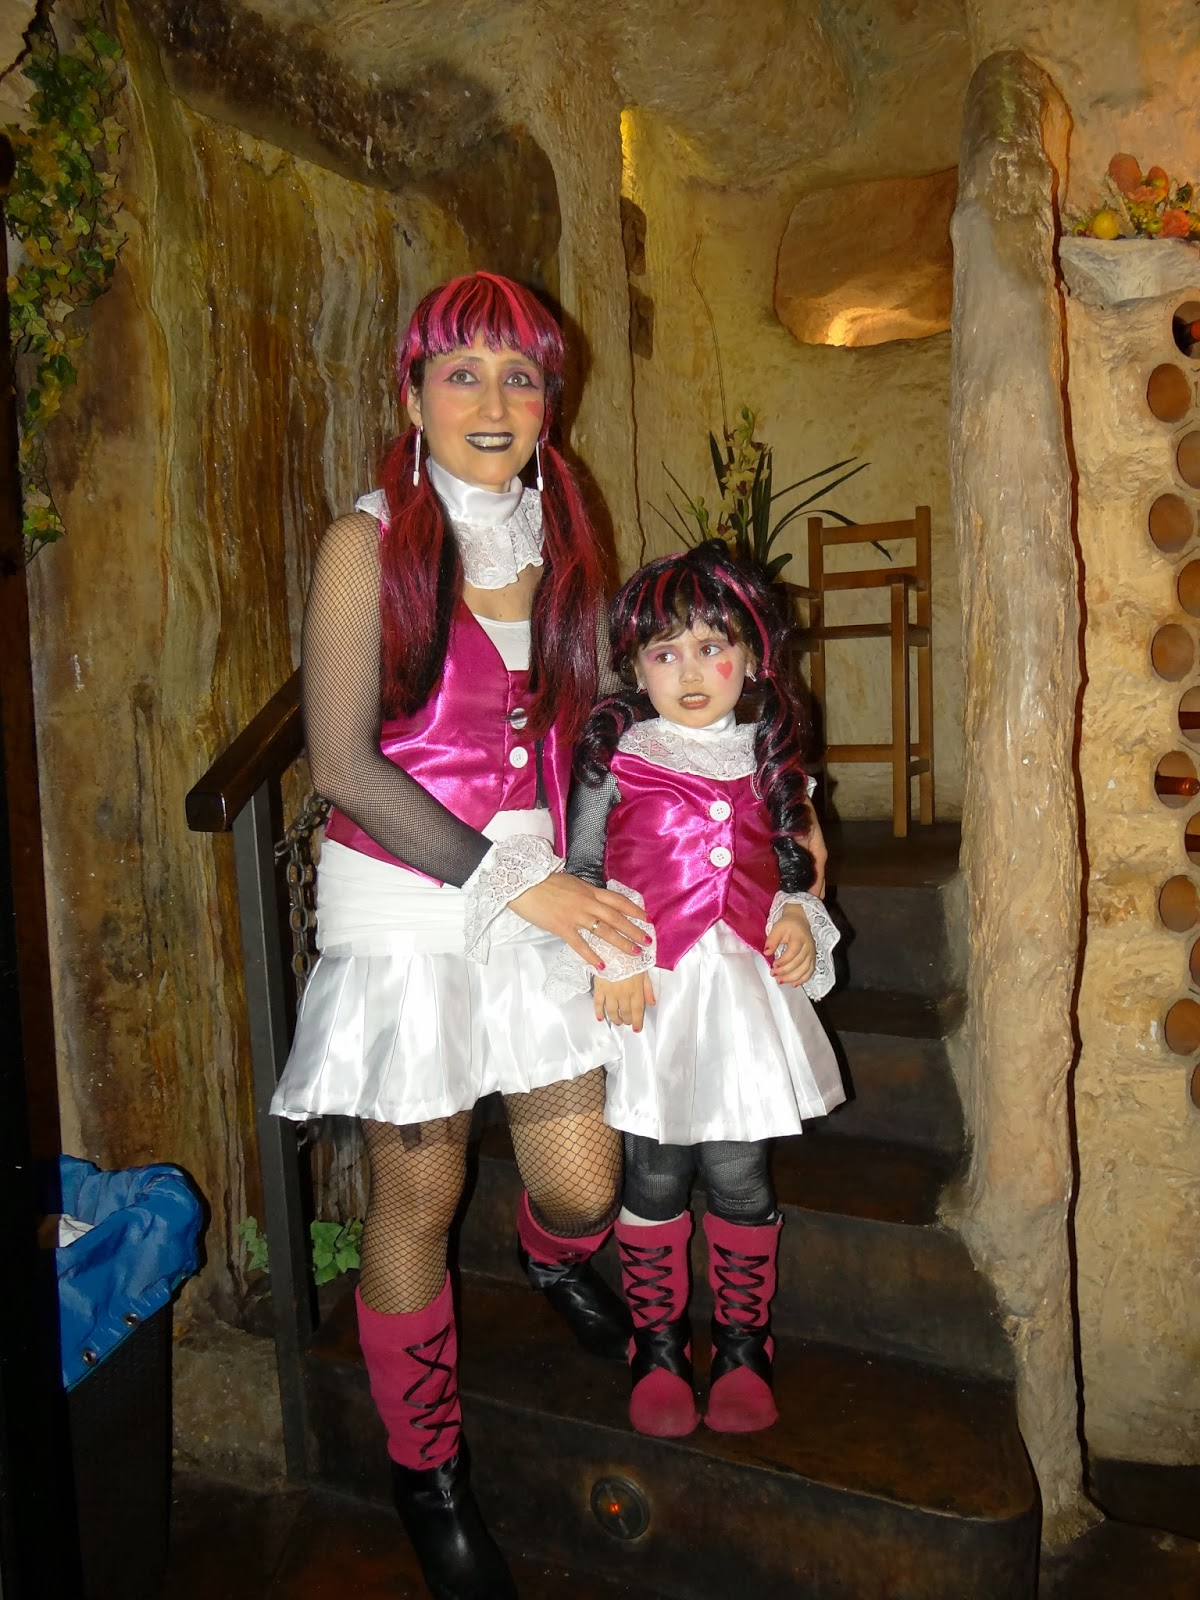 carnaval disfraz costume monster high